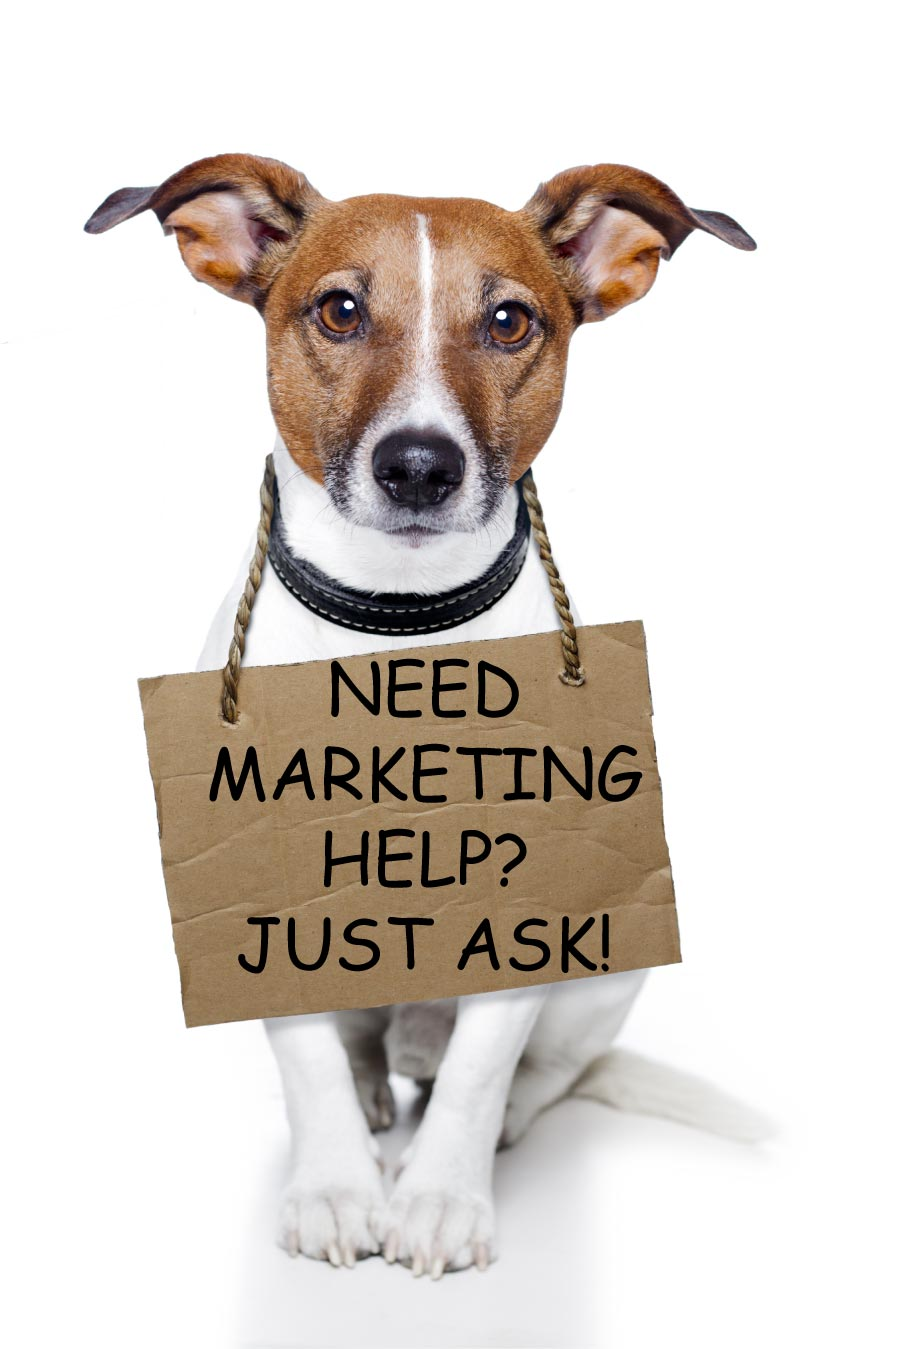 Need amrketing Help? Just ask